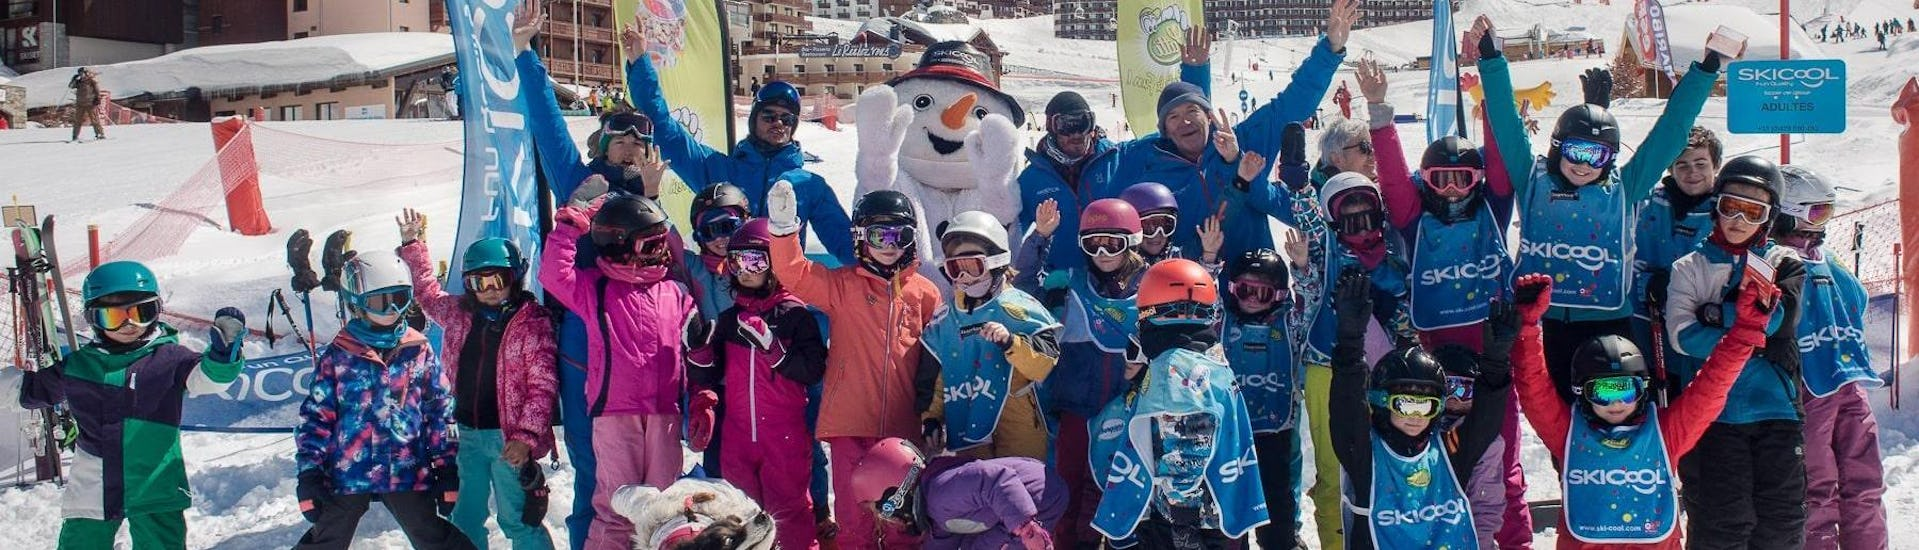 A group of kids is excited to start their ski lessons with the ski school Ski Cool in the ski resort of Val Thorens.